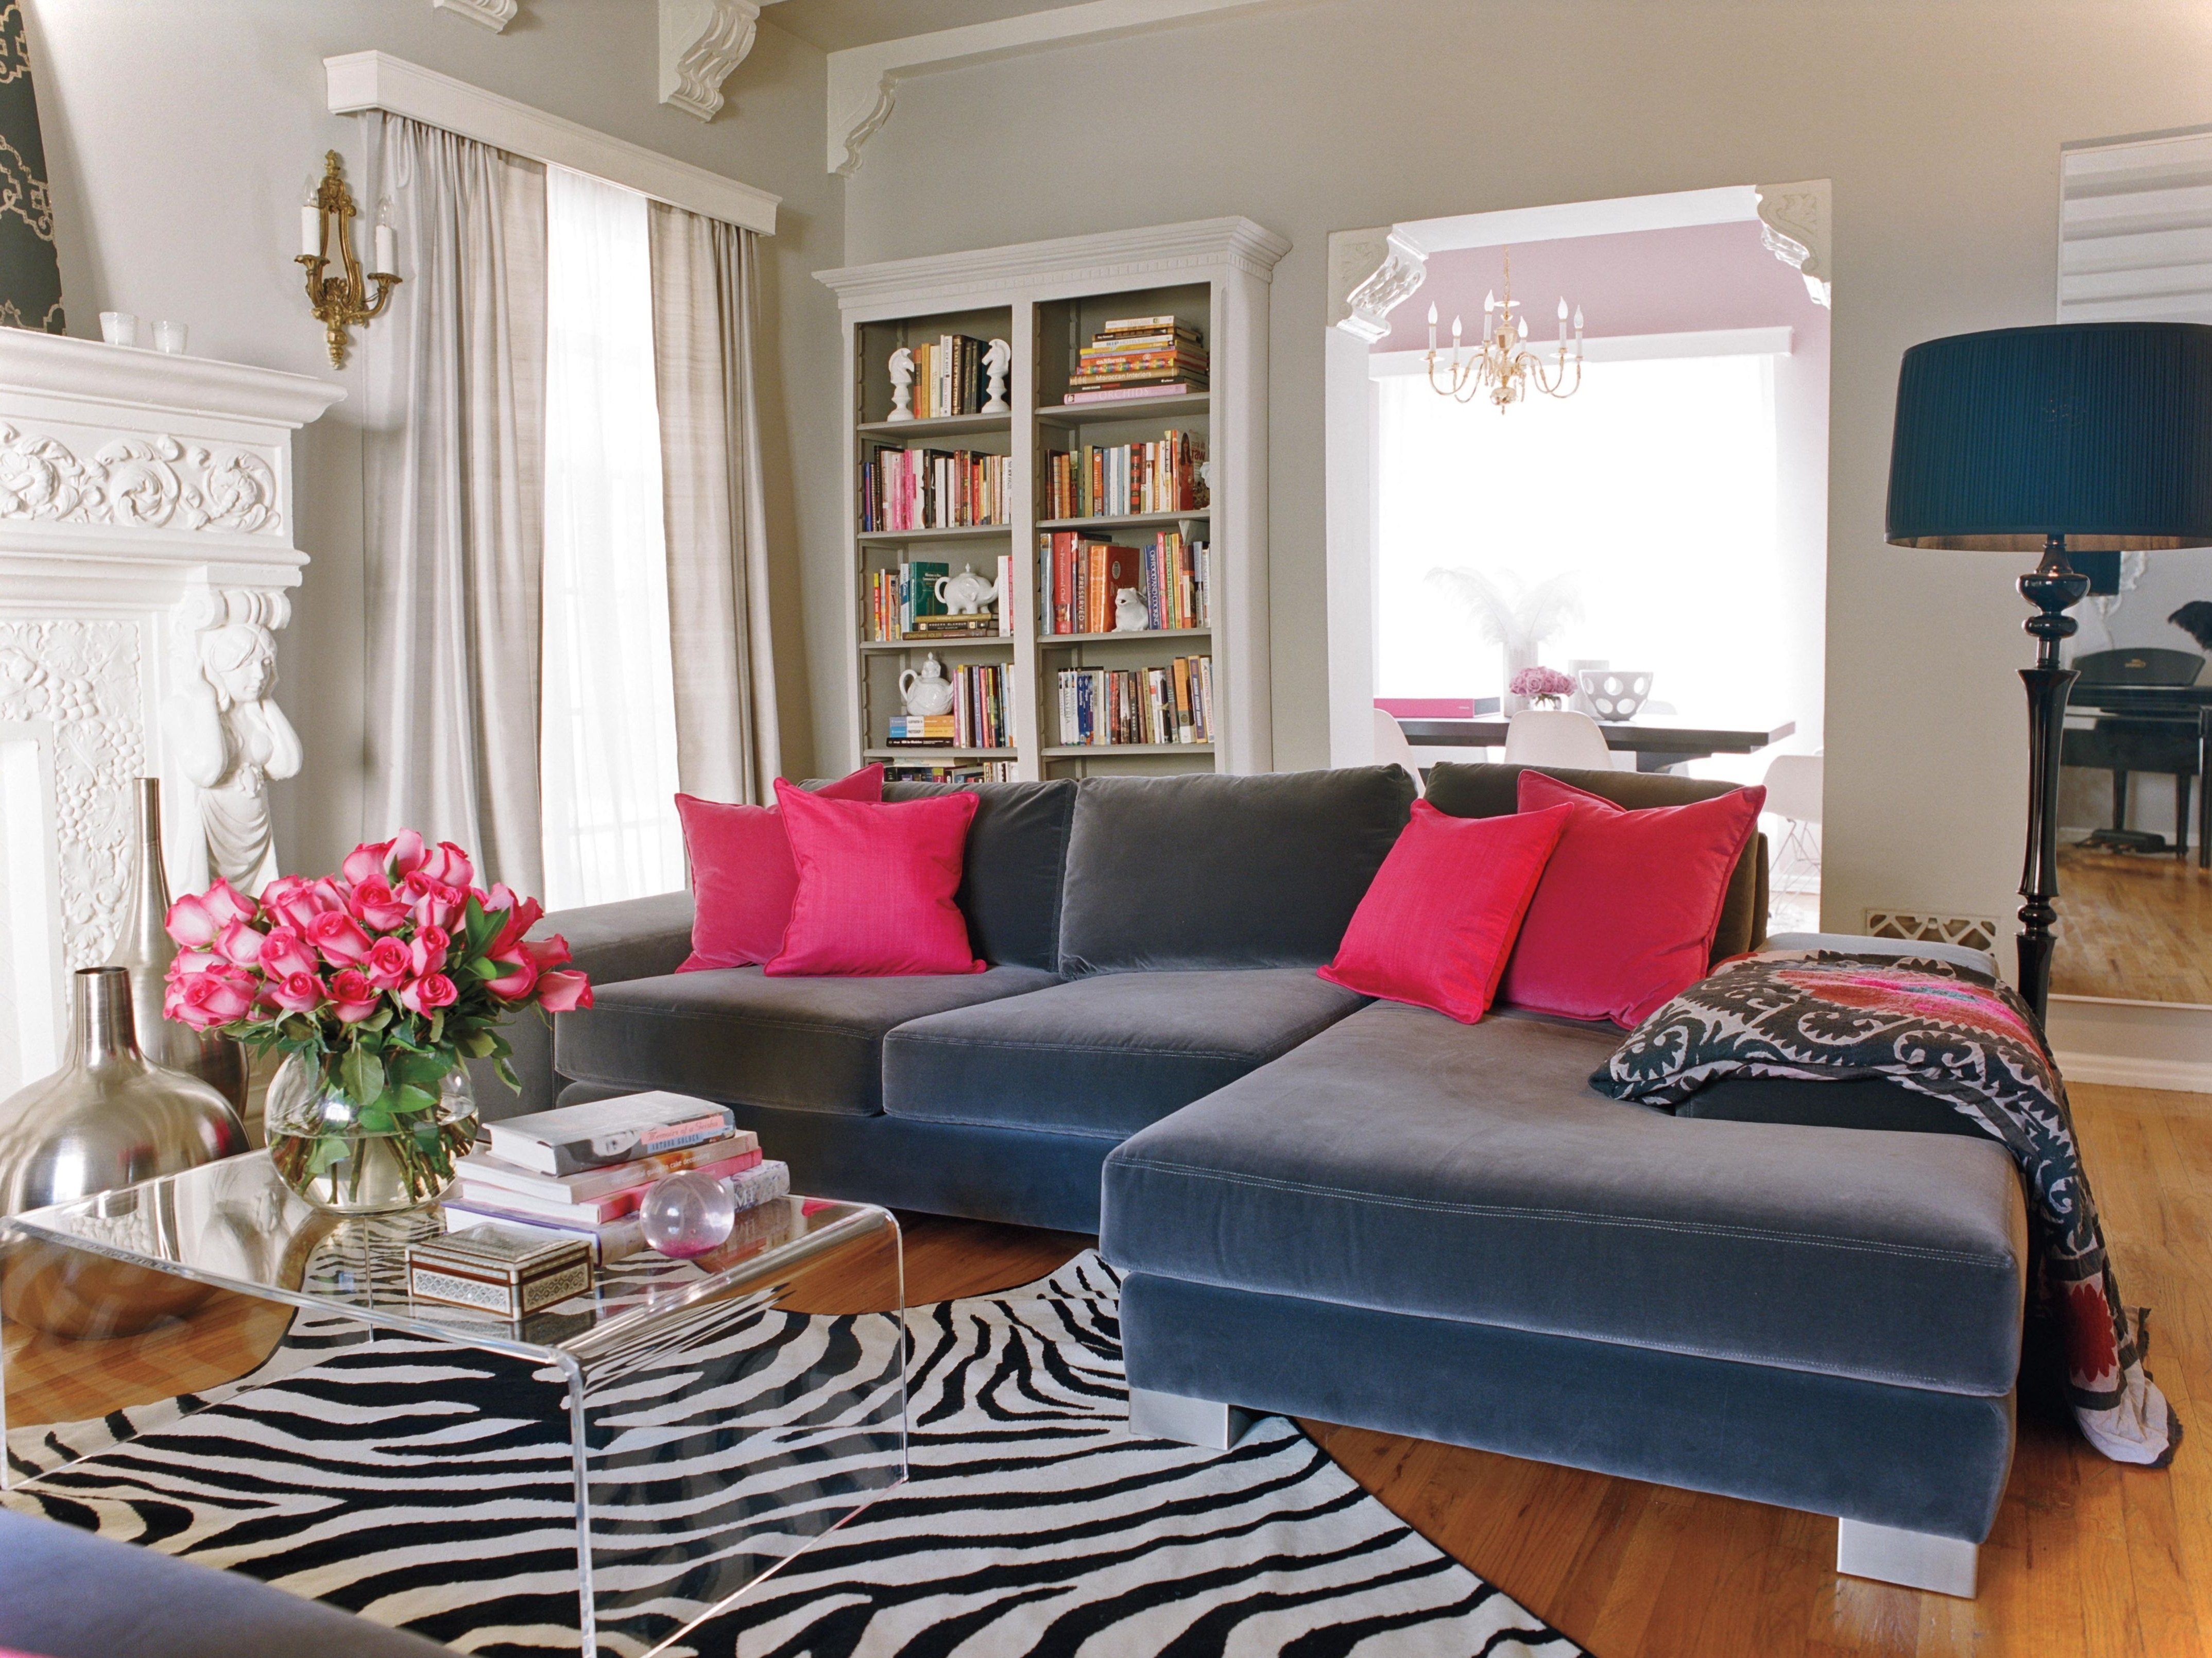 Most Up To Date Velvet Sectional Sofas With Chaise Throughout L Shaped Dark Grey Velvet Sectional Sofa And Square Pink Cushions (View 9 of 15)